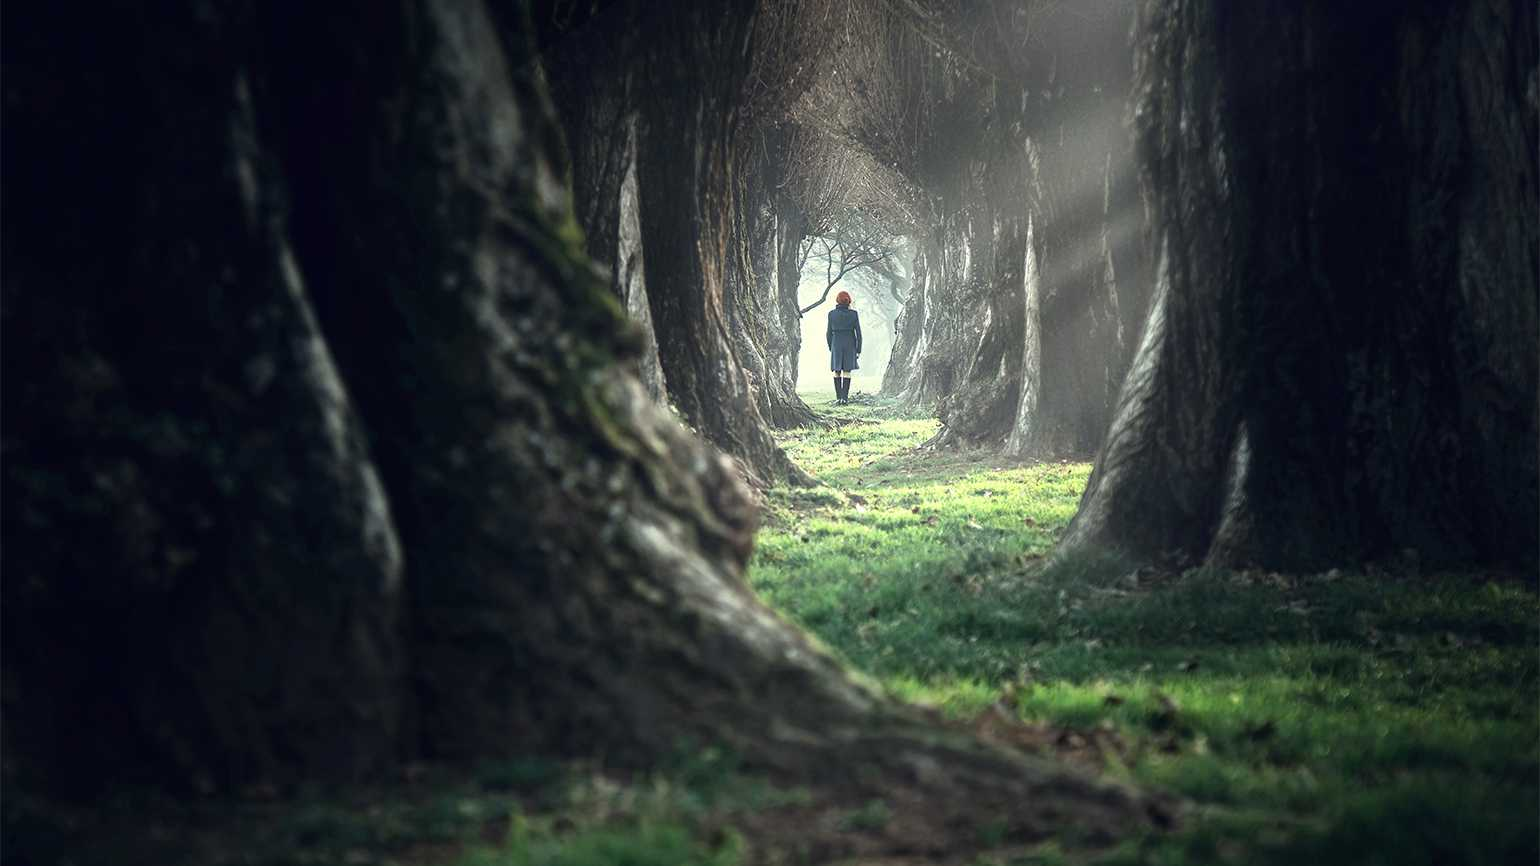 A woman walks in a dark forest